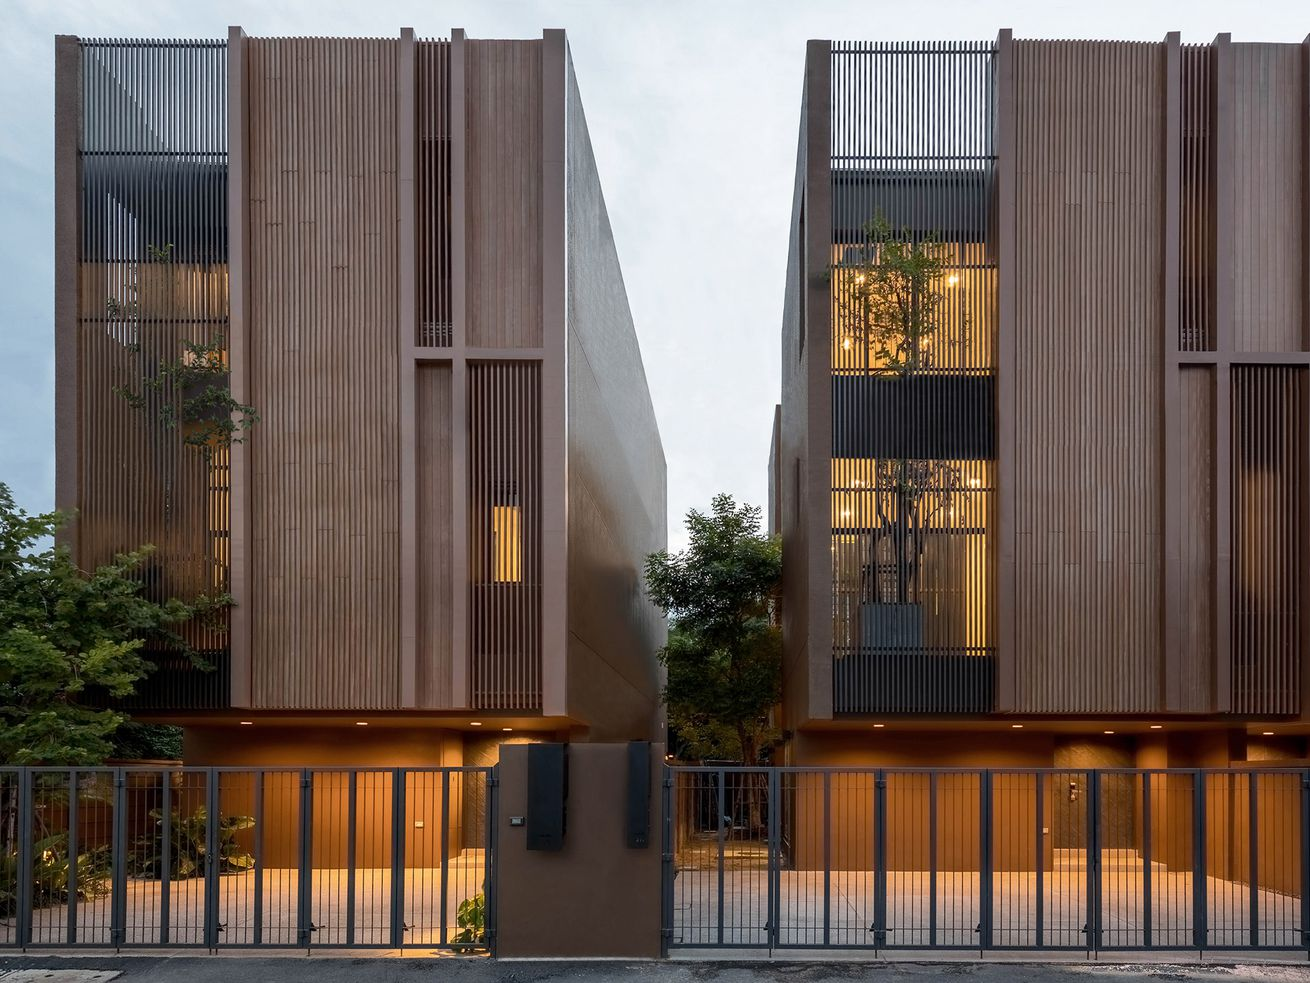 Breezy luxury townhouses have greenery poking out all over